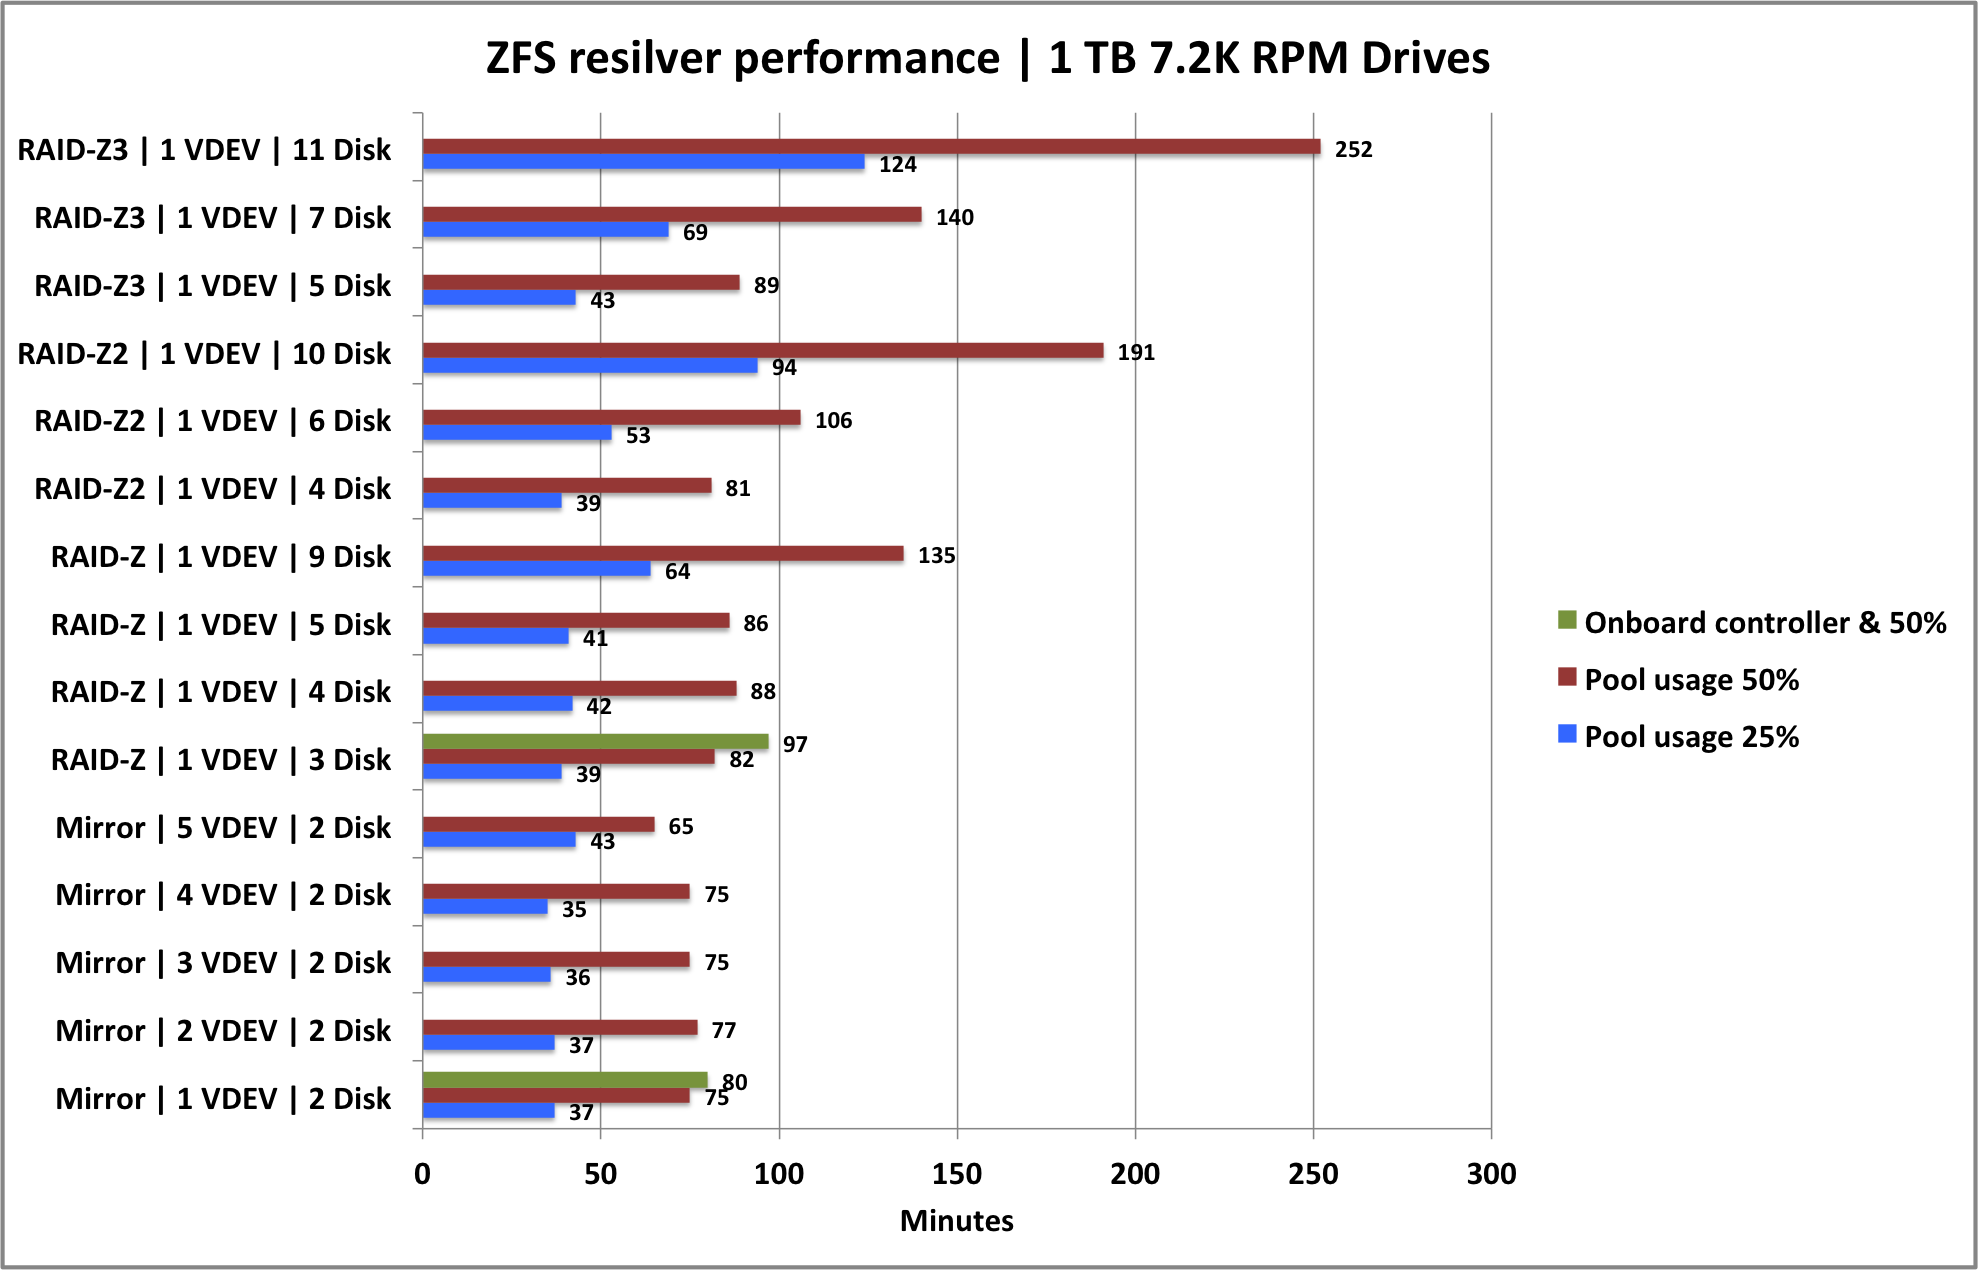 http://louwrentius.com/static/images/zfs-resilver-benchmark02.png